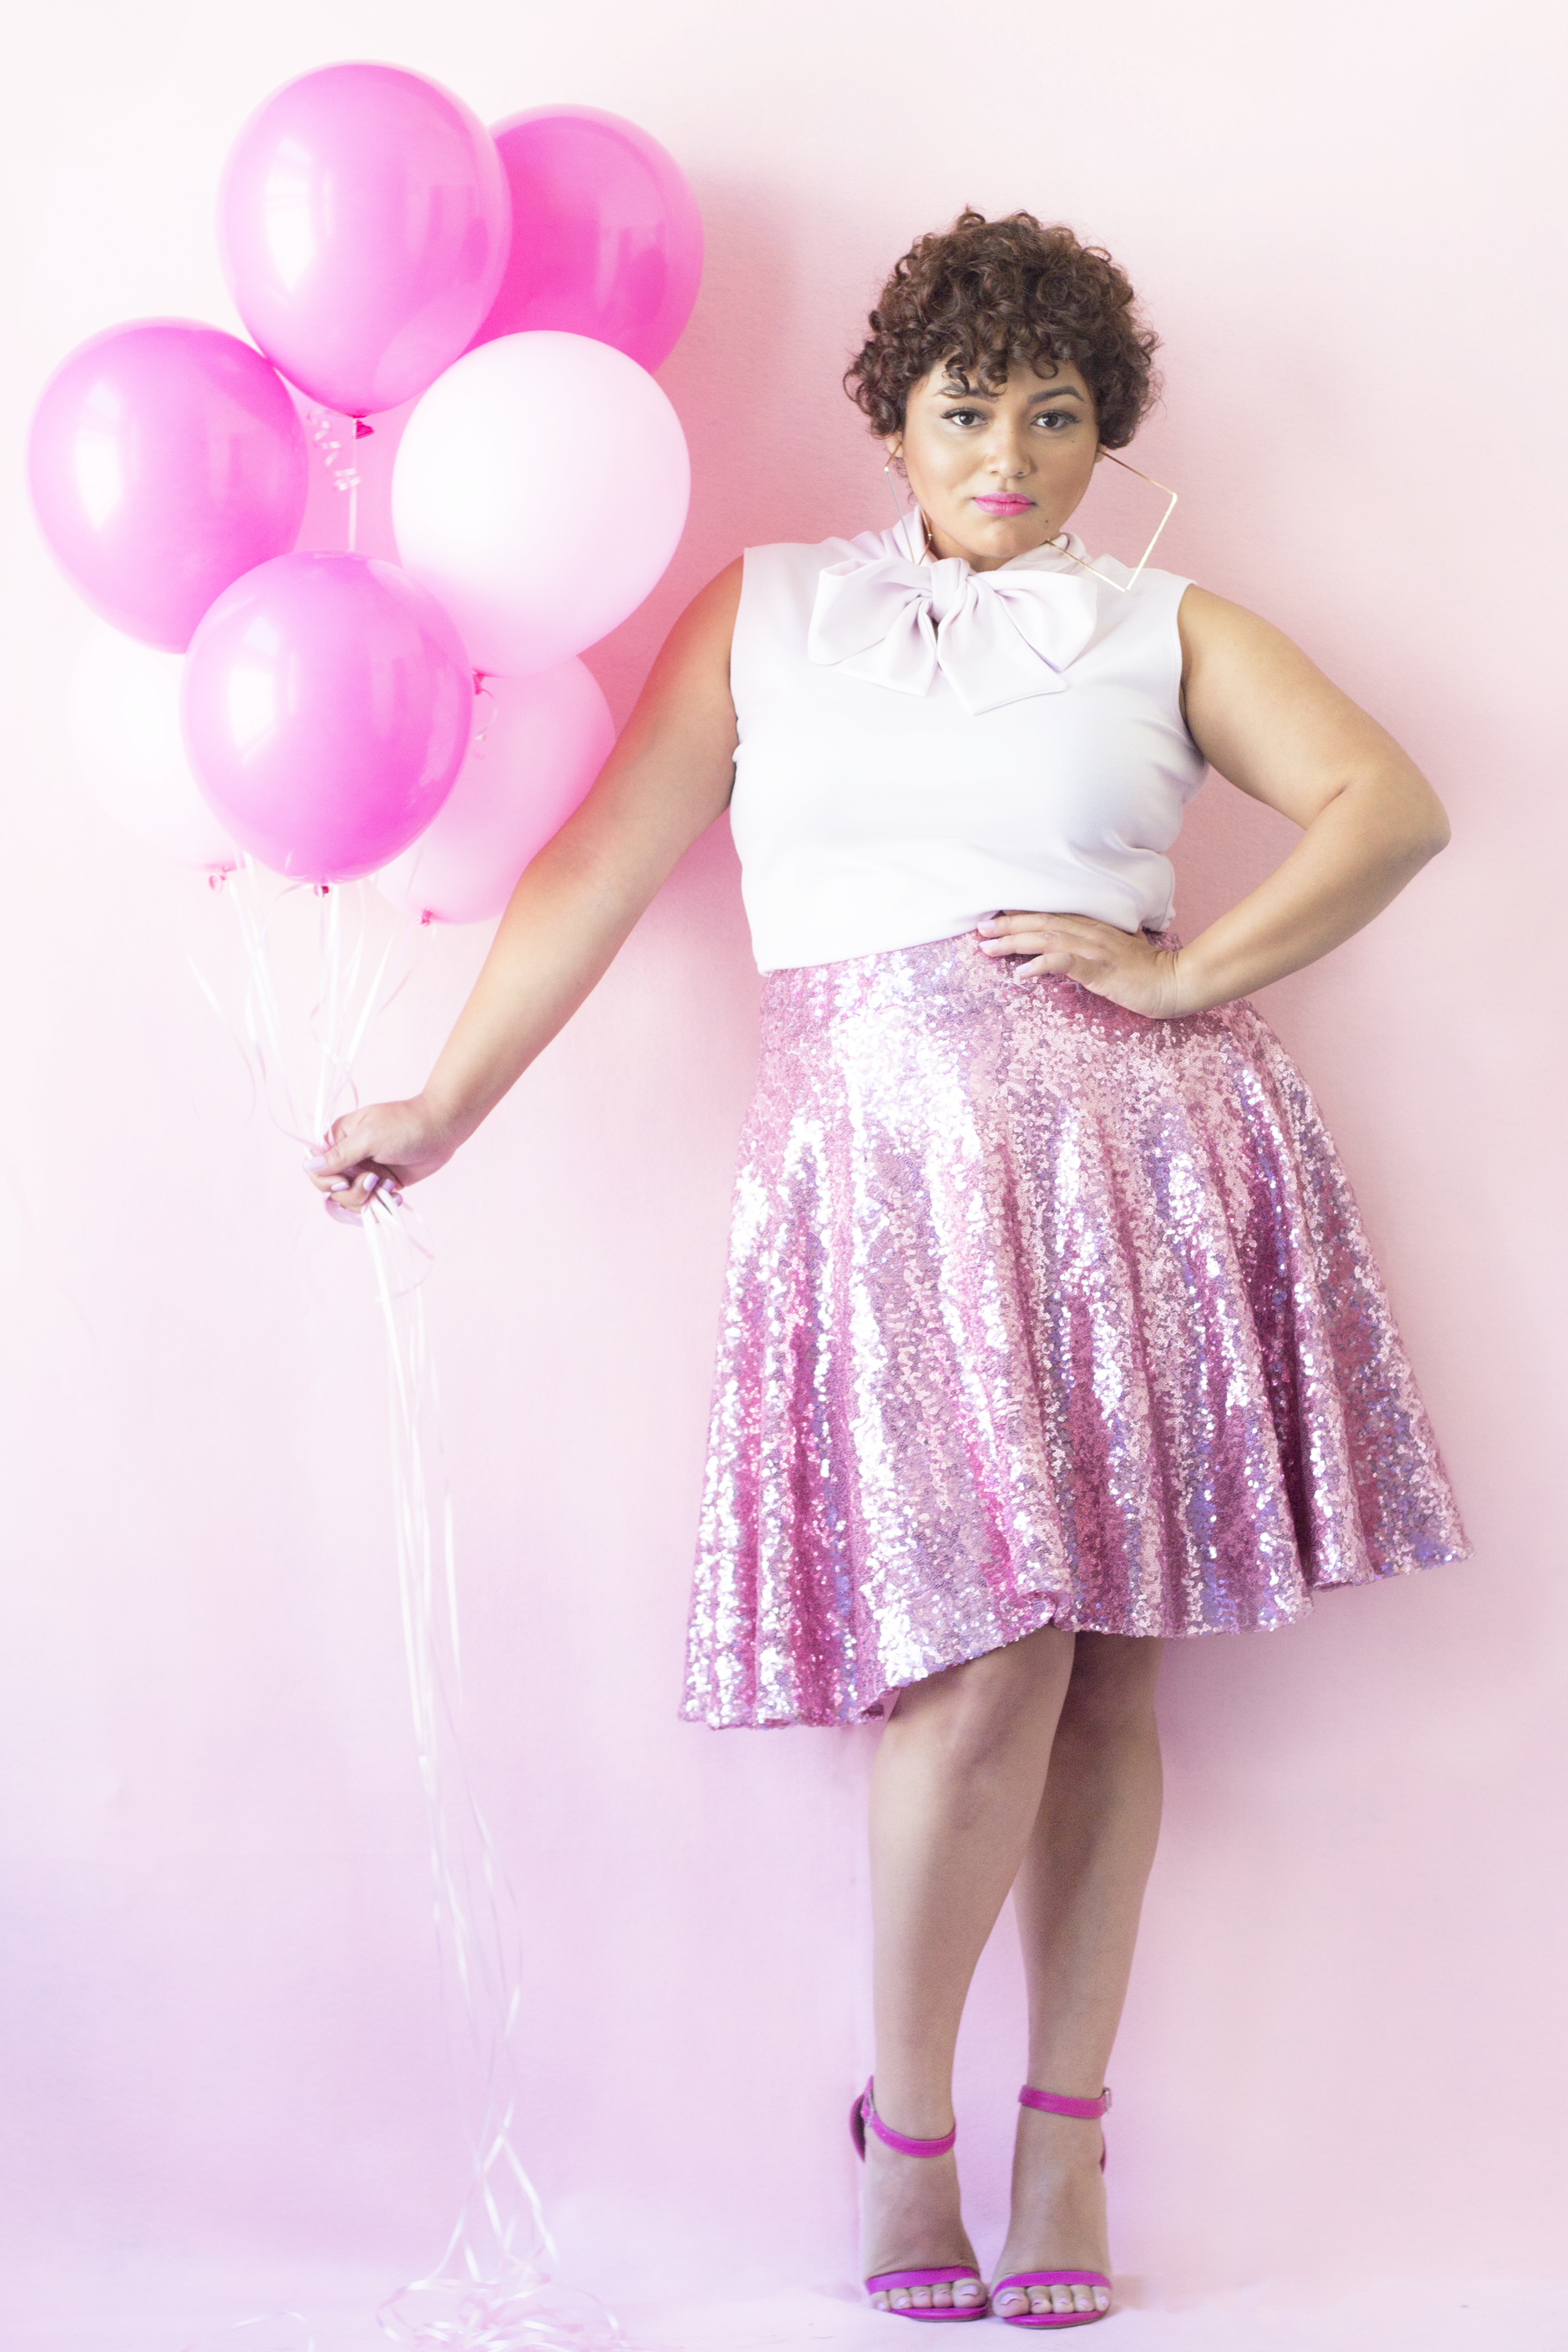 ZELIE FOR SHE SUPPORTS BREAST CANCER AWARENESS WITH A GLAMOROUS ...